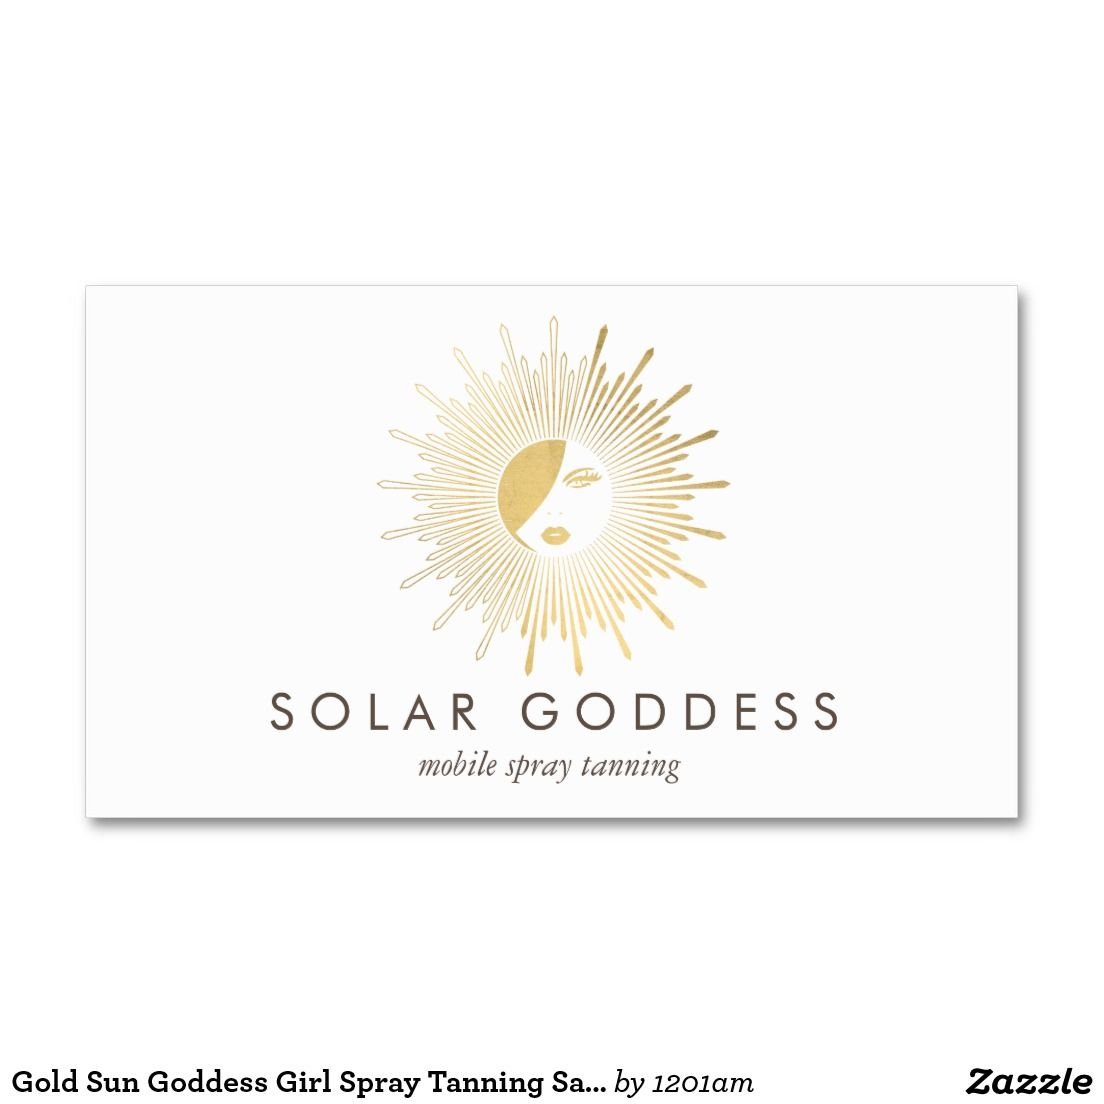 Sun Goddess Girl Logo Spray Tanning Salon Business Card | Salon logo ...